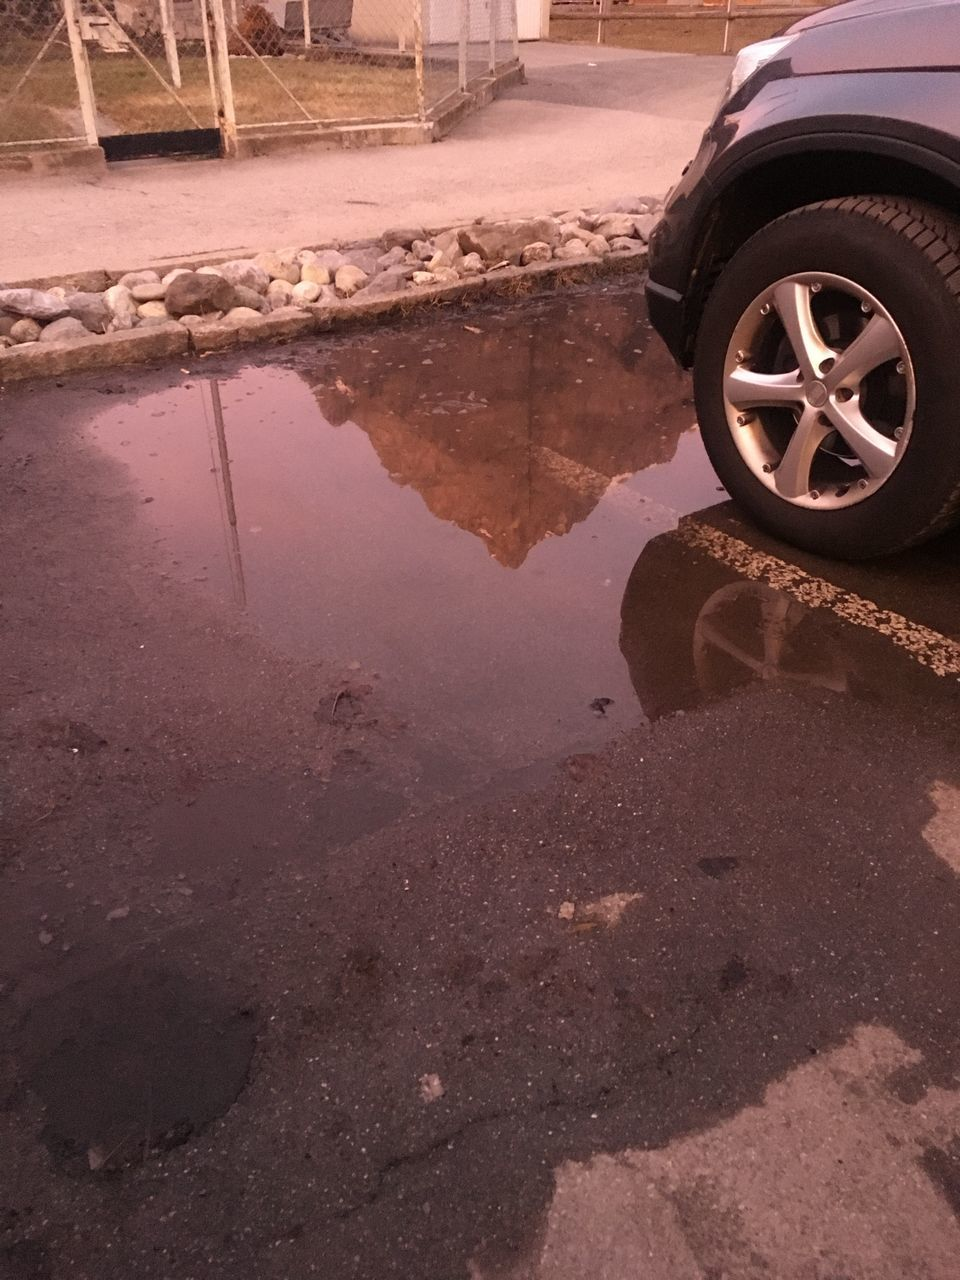 REFLECTION OF ROAD IN PUDDLE ON STREET